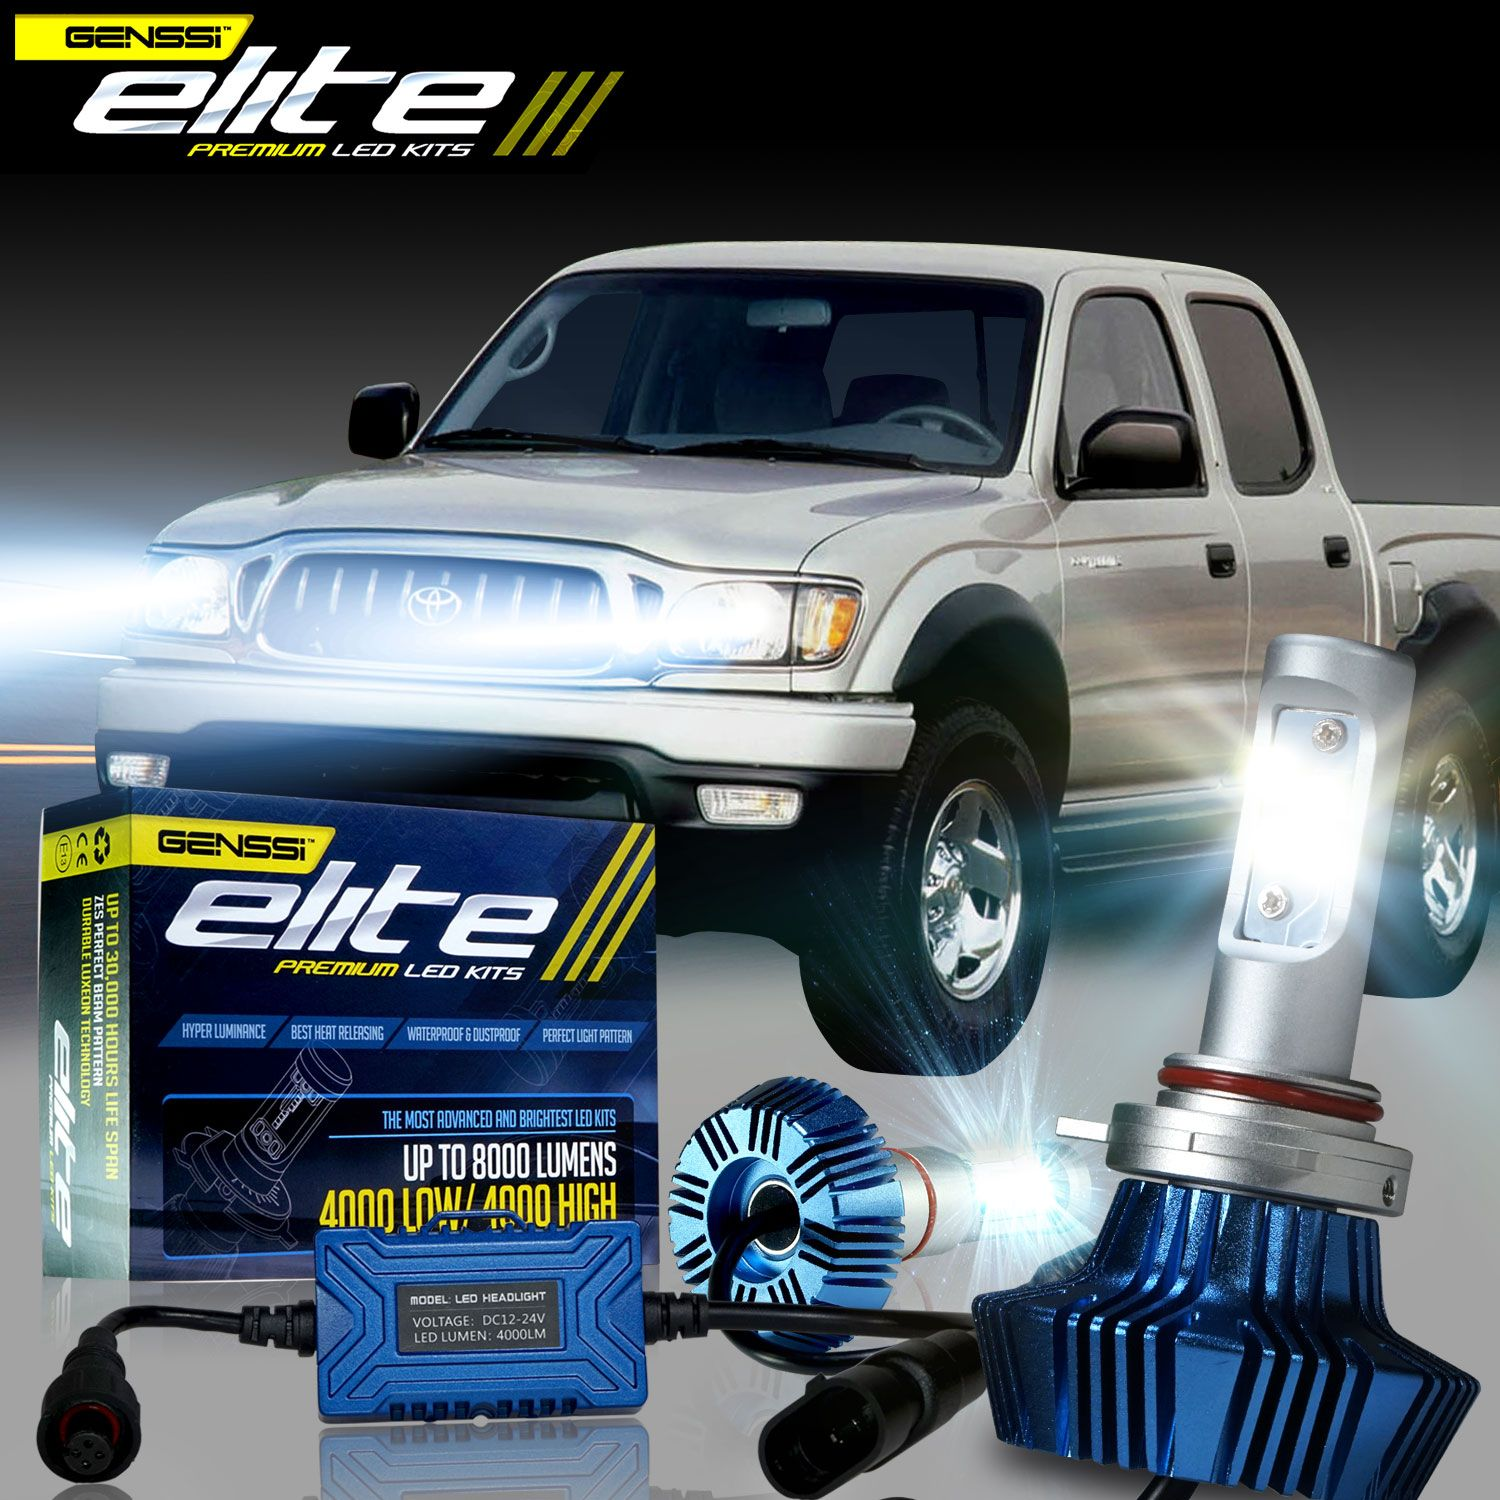 G7 Elite Led Headlight Bulb Kit For Toyota Tacoma 1997 2004